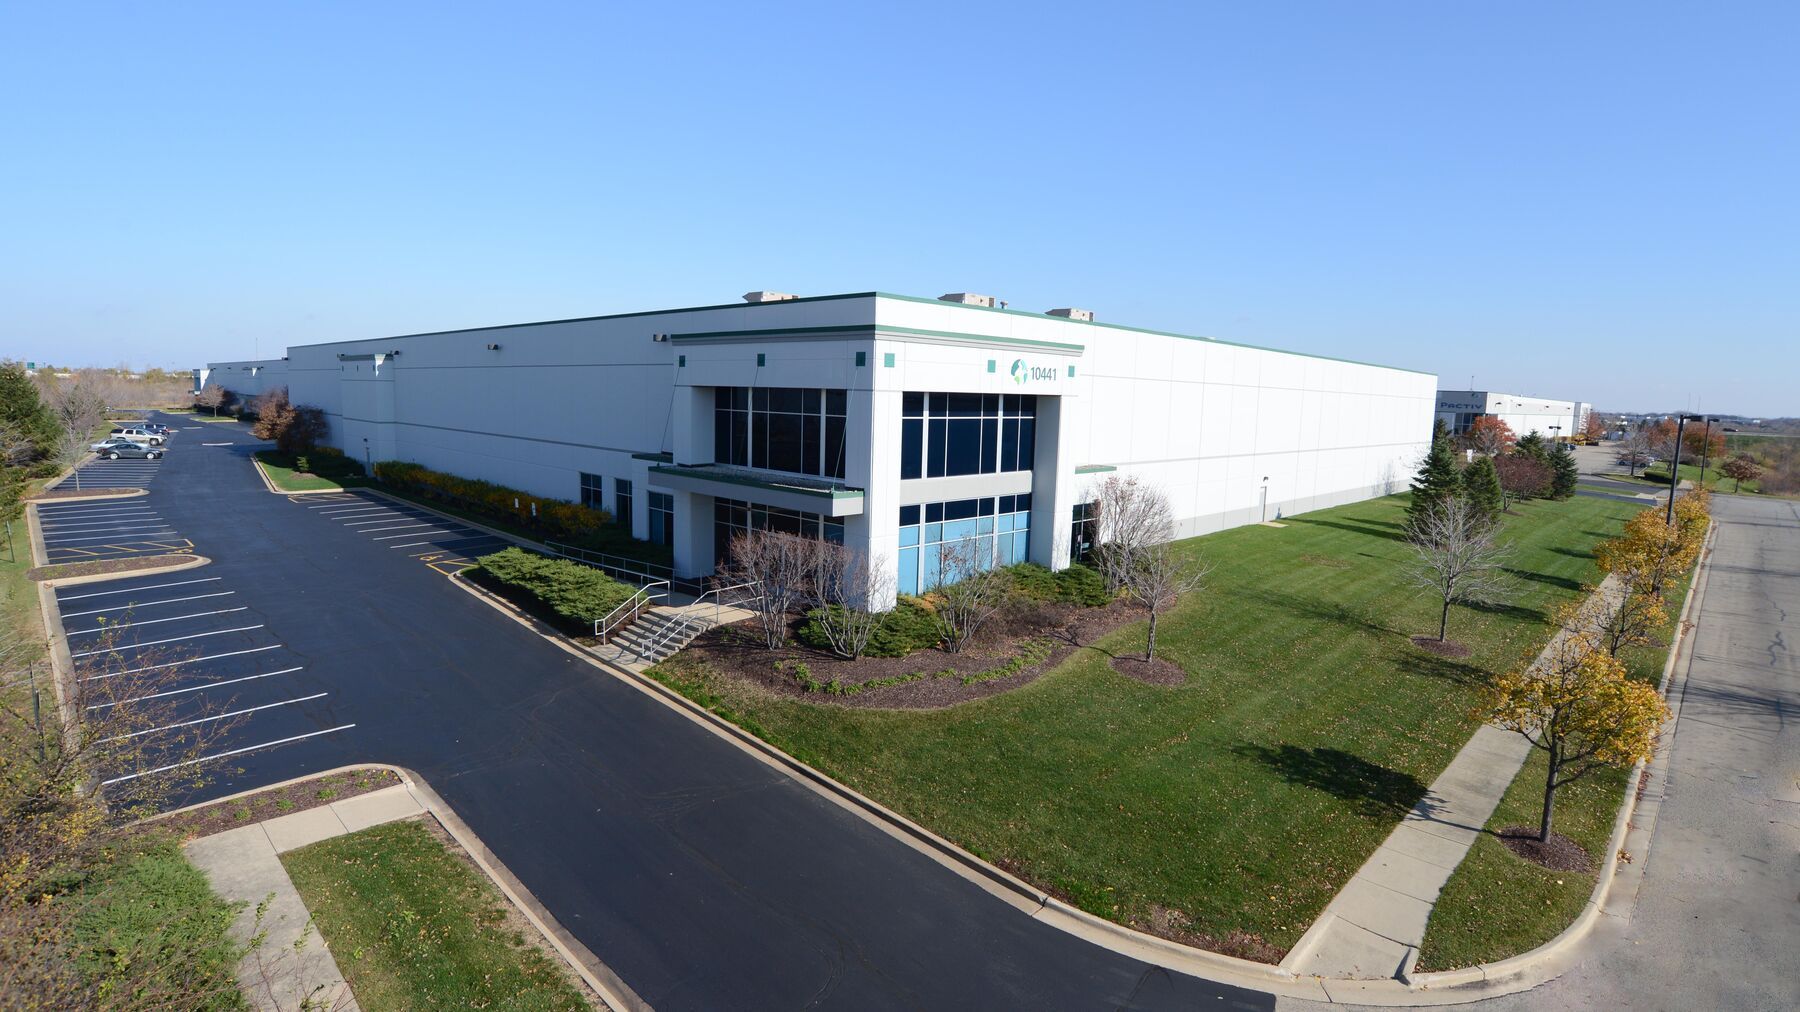 DPM-Prologis-Woodridge-10441-Beaudin-Blvd_Bldg-Image.jpg